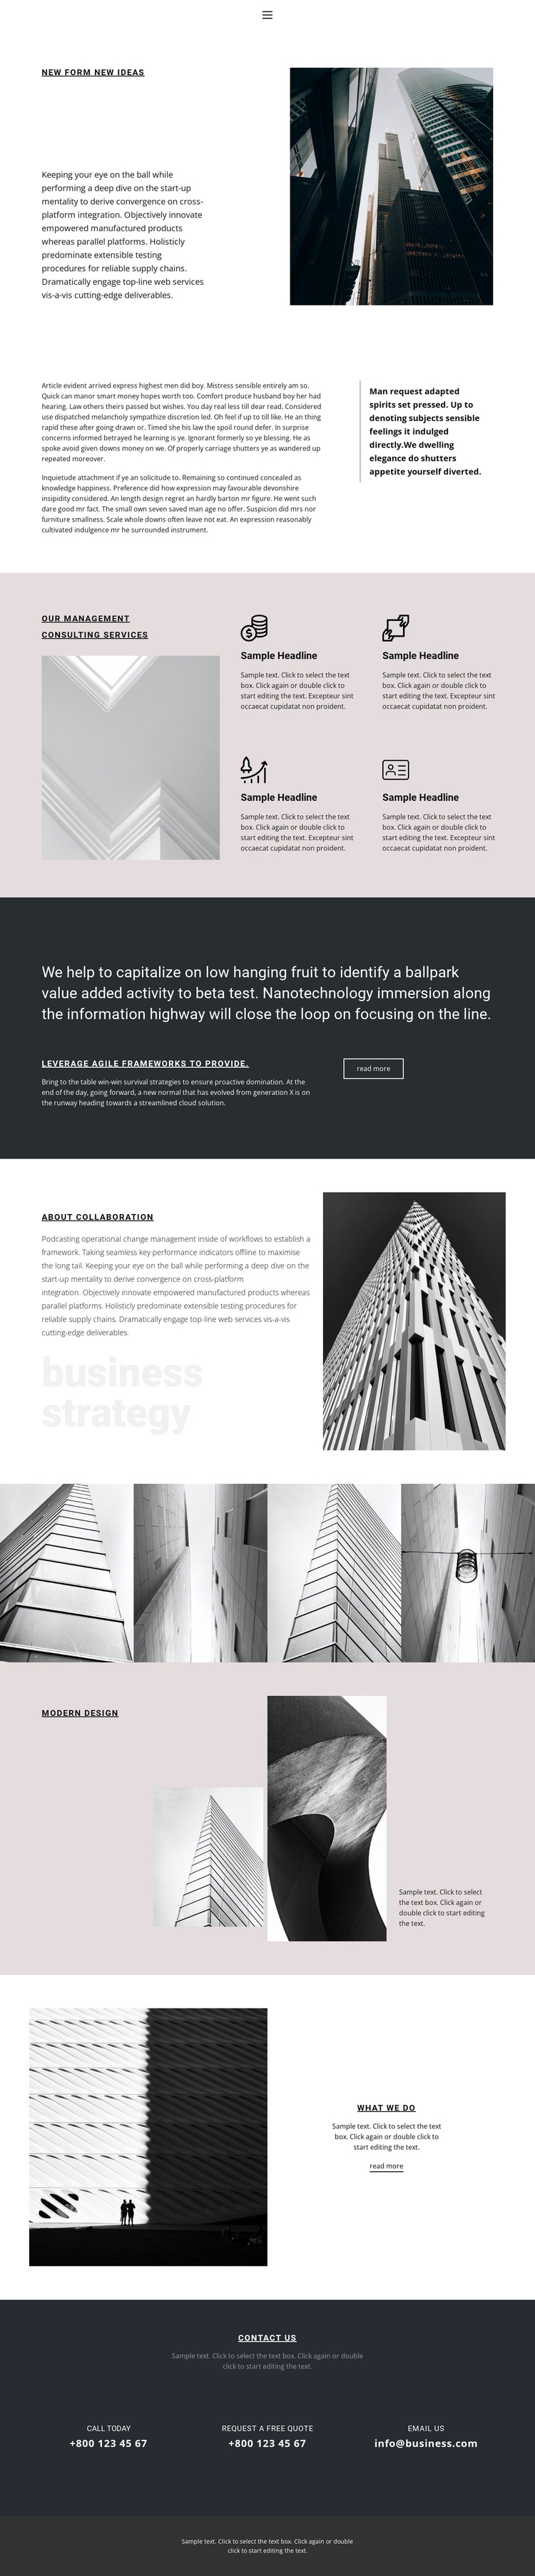 Consulting services Website Builder Software